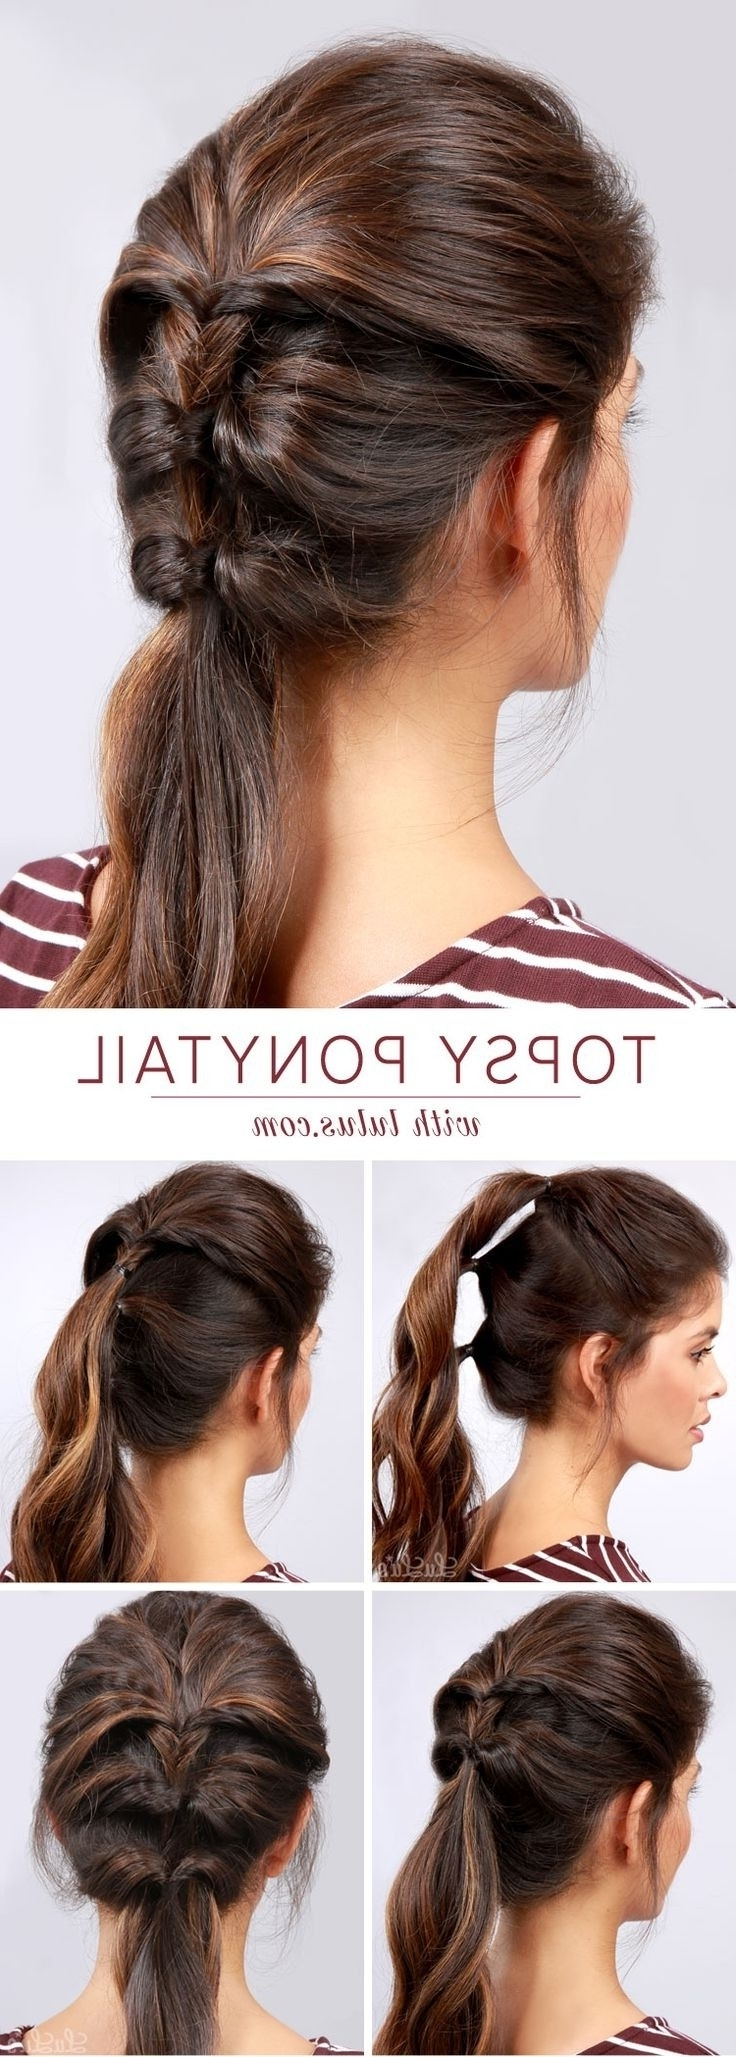 Favorite Dyed Simple Ponytail Hairstyles For Second Day Hair For 22 Great Ponytail Hairstyles For Girls – Pretty Designs (View 7 of 20)